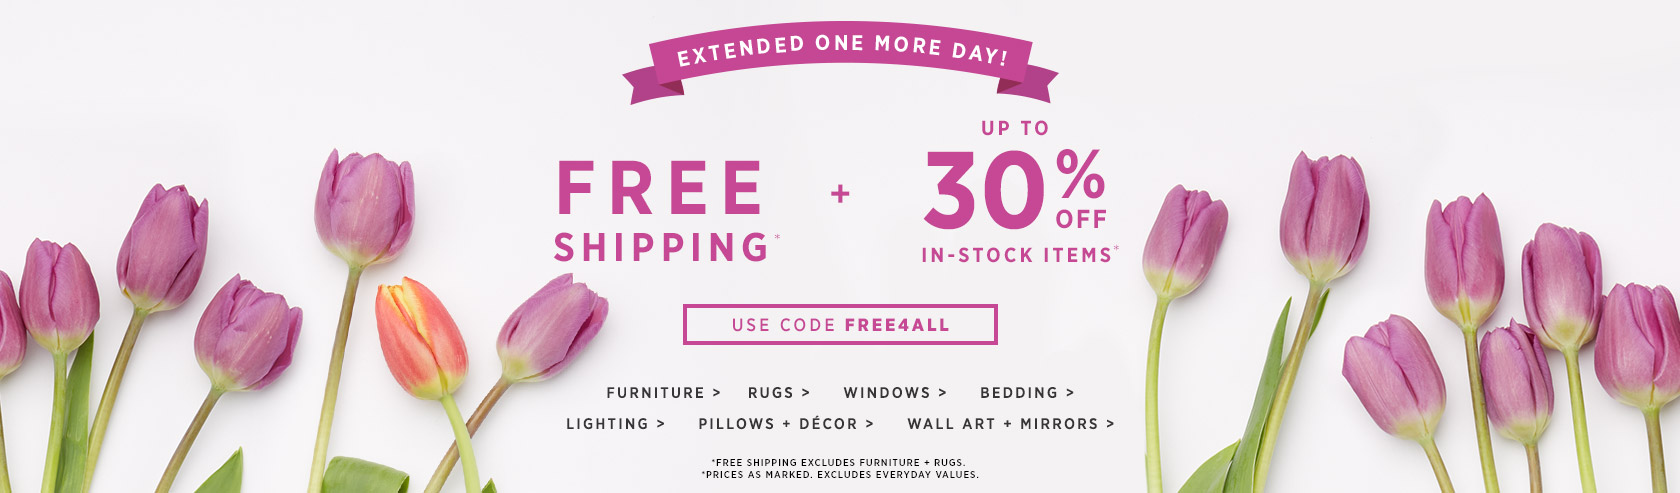 Extended One More Day! Free Shipping + Up To 30% Off In-Stock Items. Use Code FREE4ALL